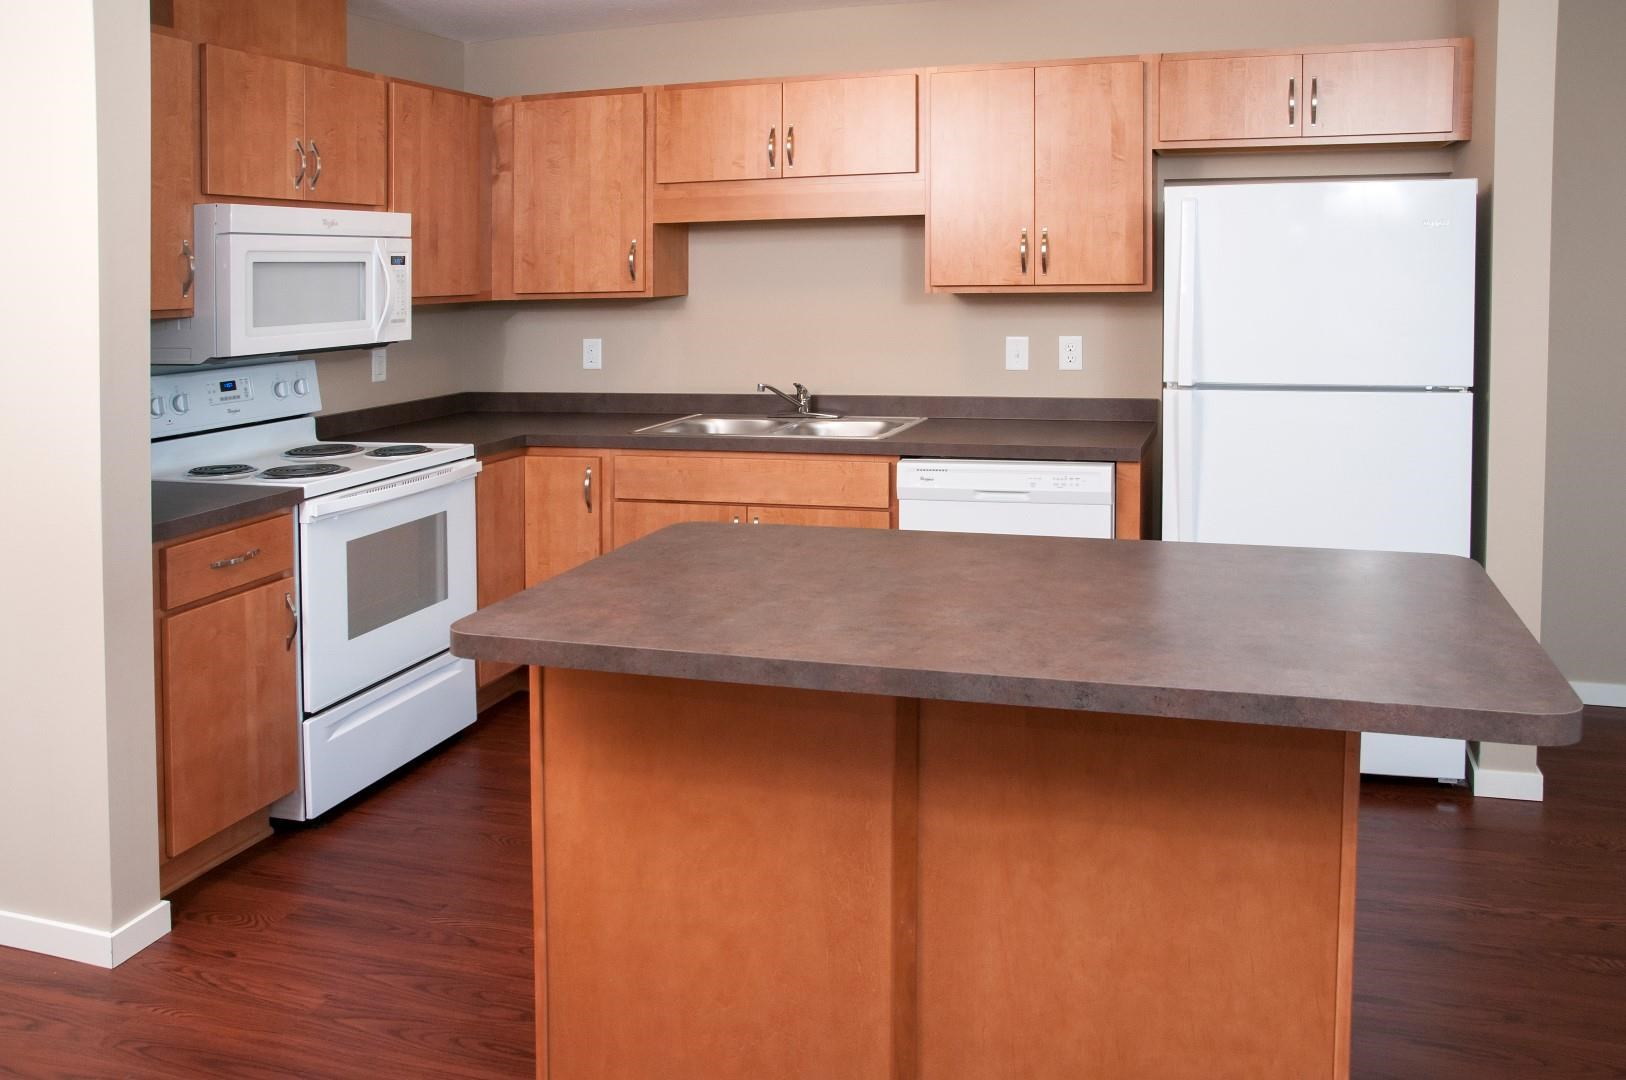 Carver Crossing Kitchen with White Appliances and Wood Cabinetry